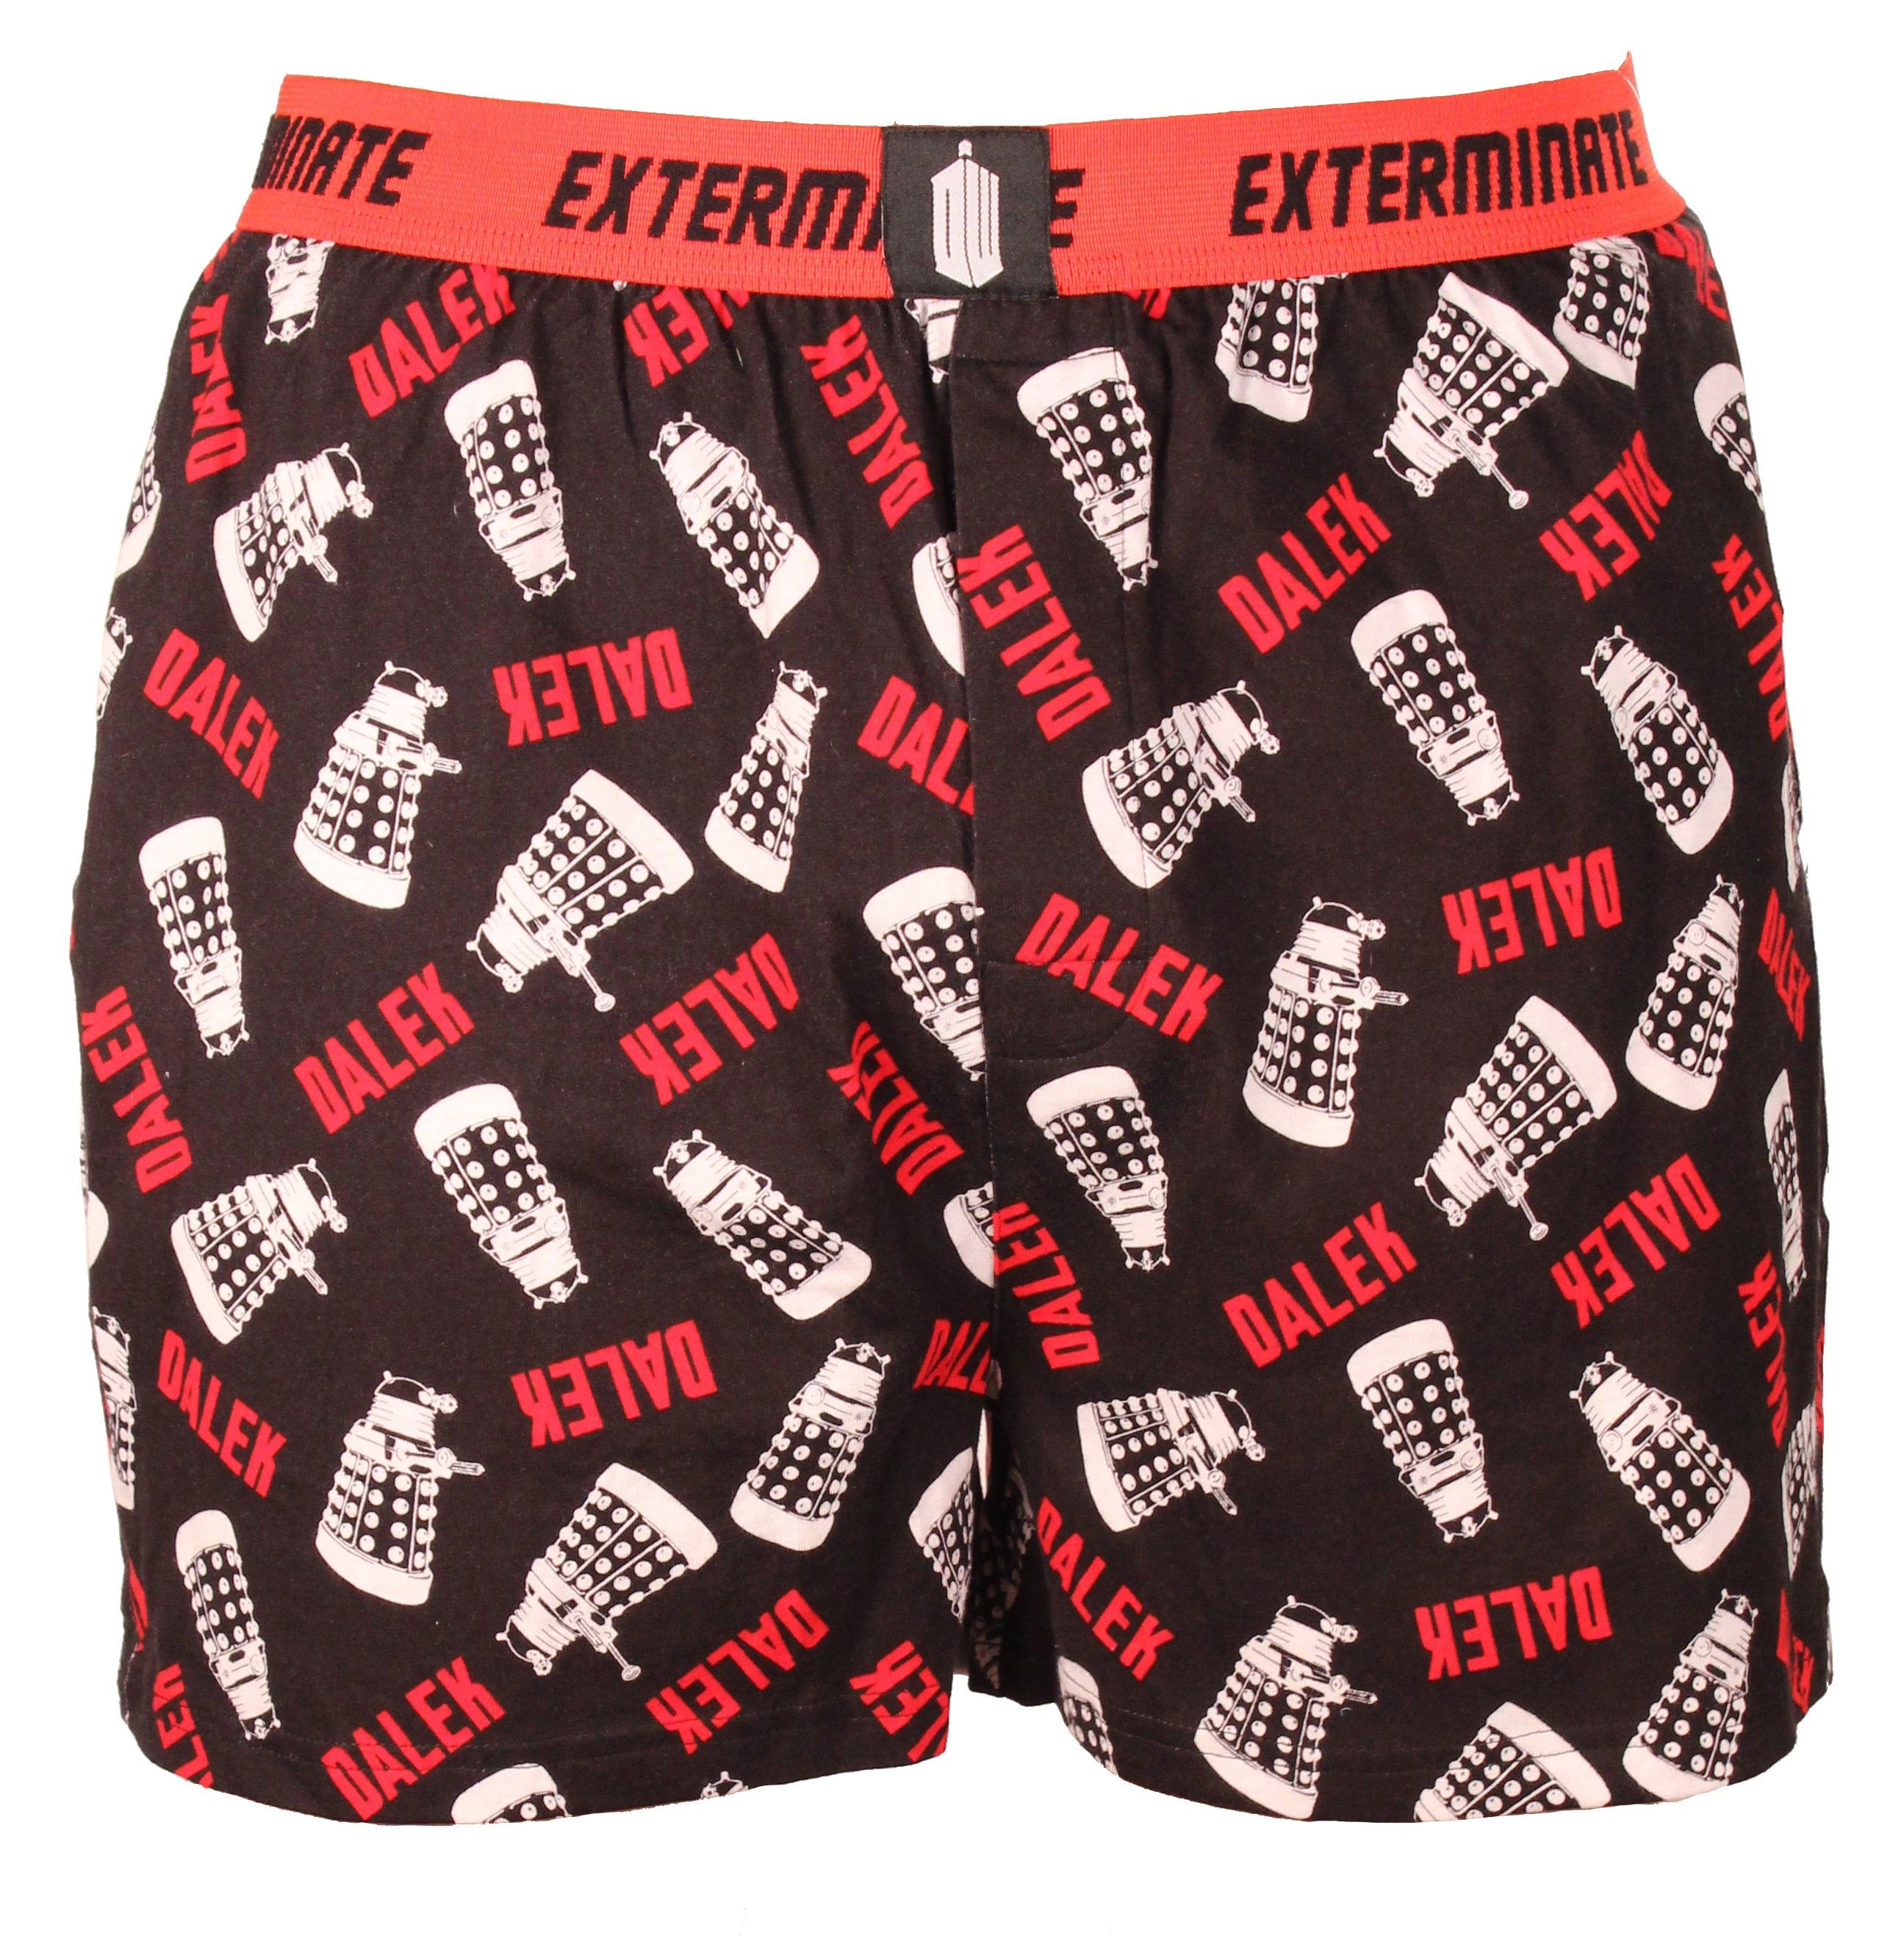 Doctor Who: Exterminate Dalek Boxer --  Keep your enemies close with these 100% Cotton Boxers.